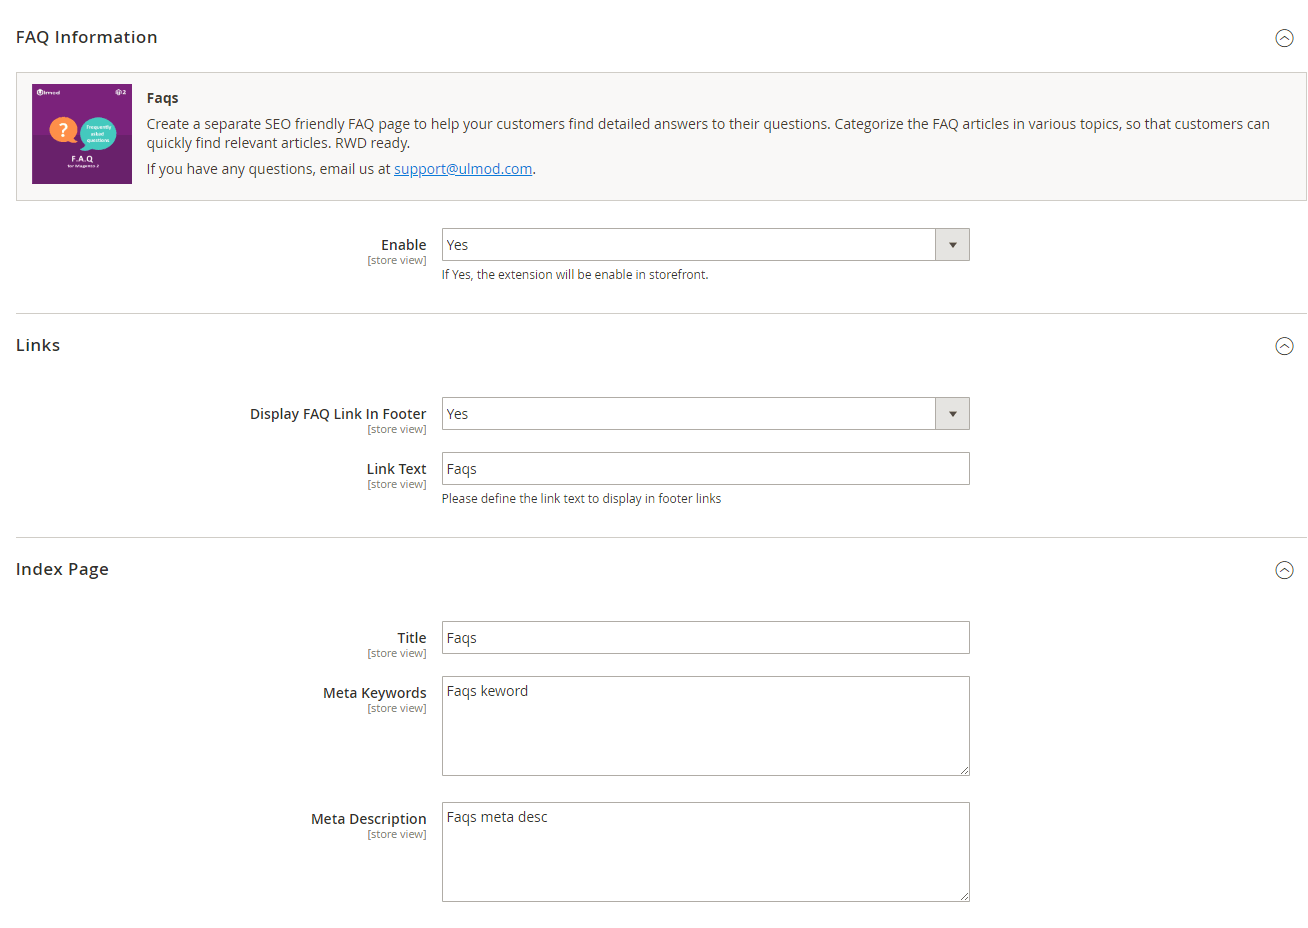 Links and index page settings